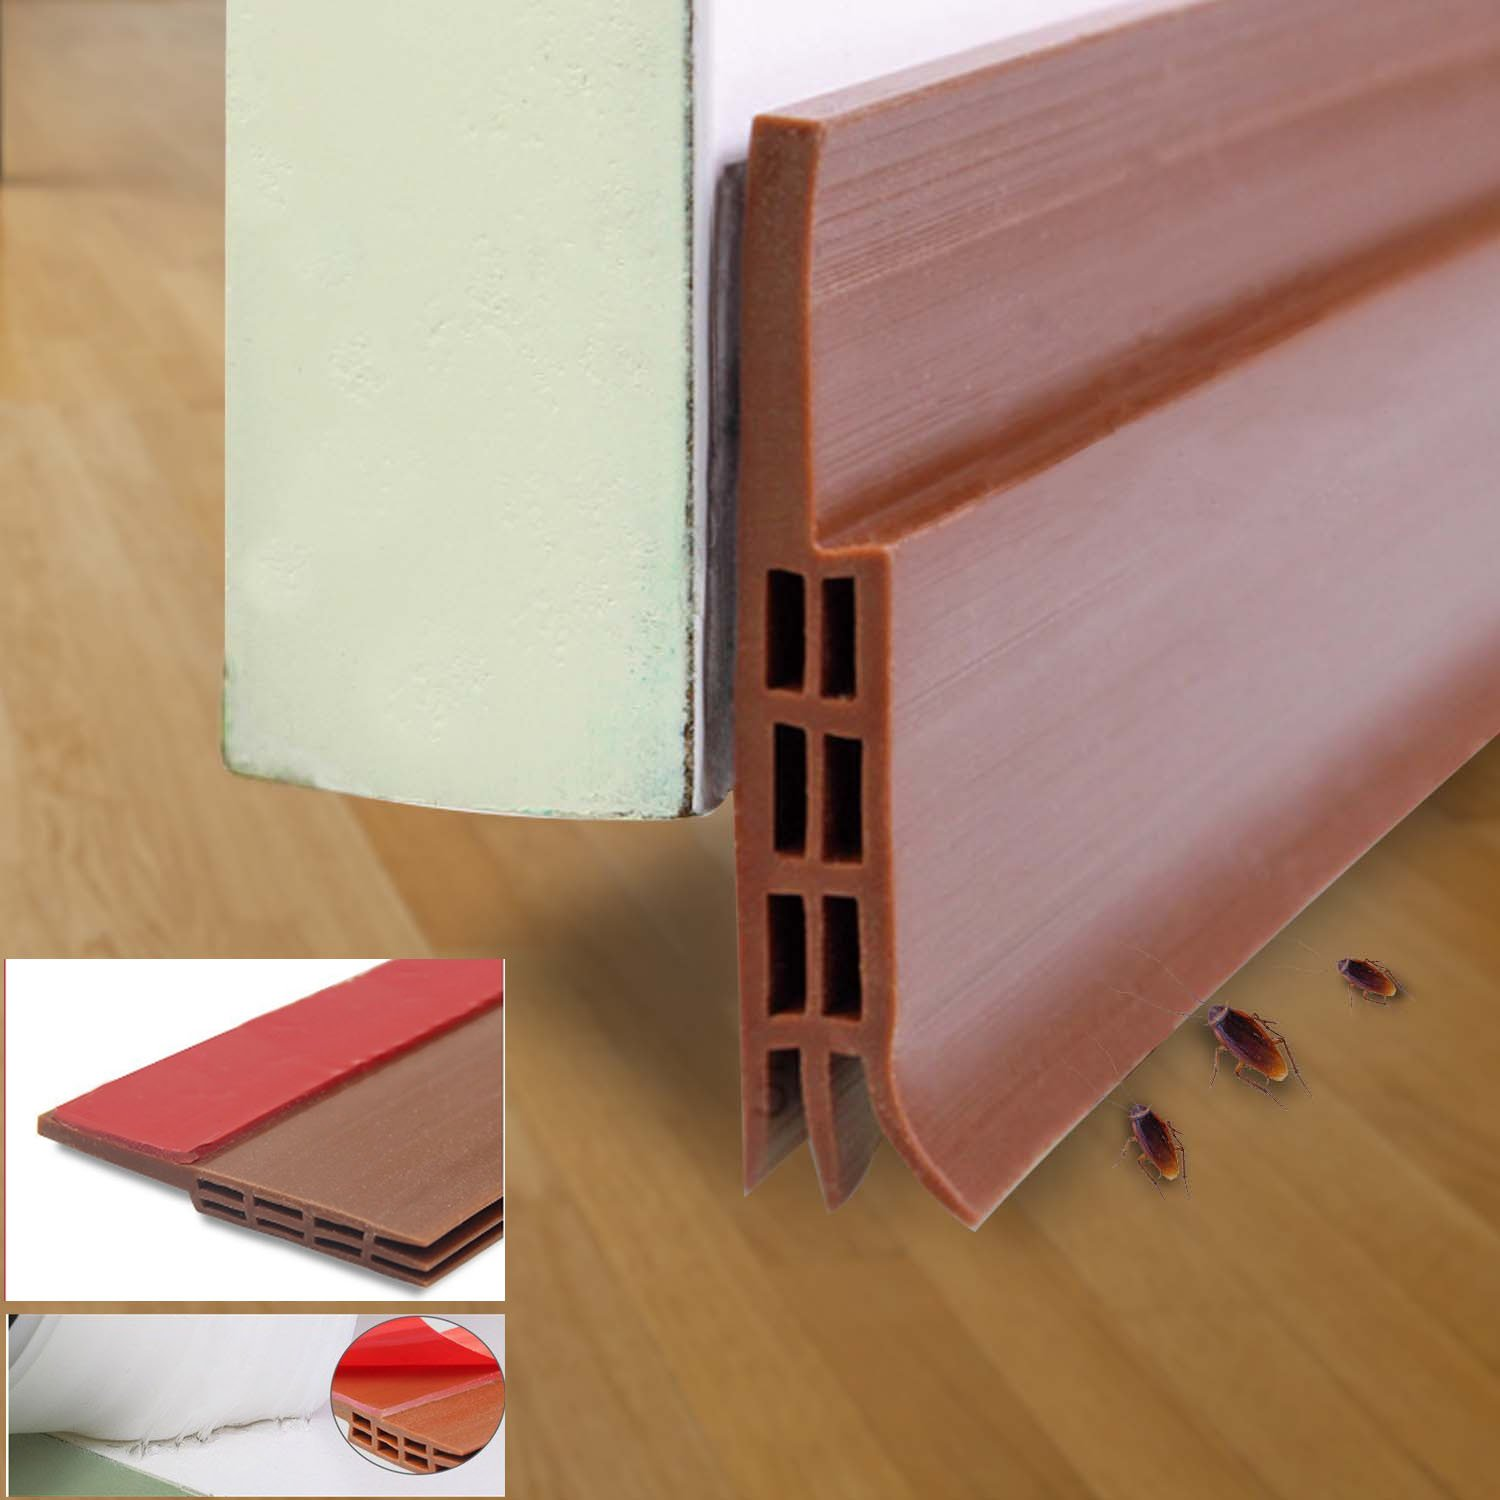 Draught Excluder Tape Rubber Seal Weather - Adhesive Under Door Sweep Weather Stripping Soundproof Doors Window Strip Seal, 2' Width x 39' Length (Brown) 2 Width x 39 Length (Brown) GB UNICORN